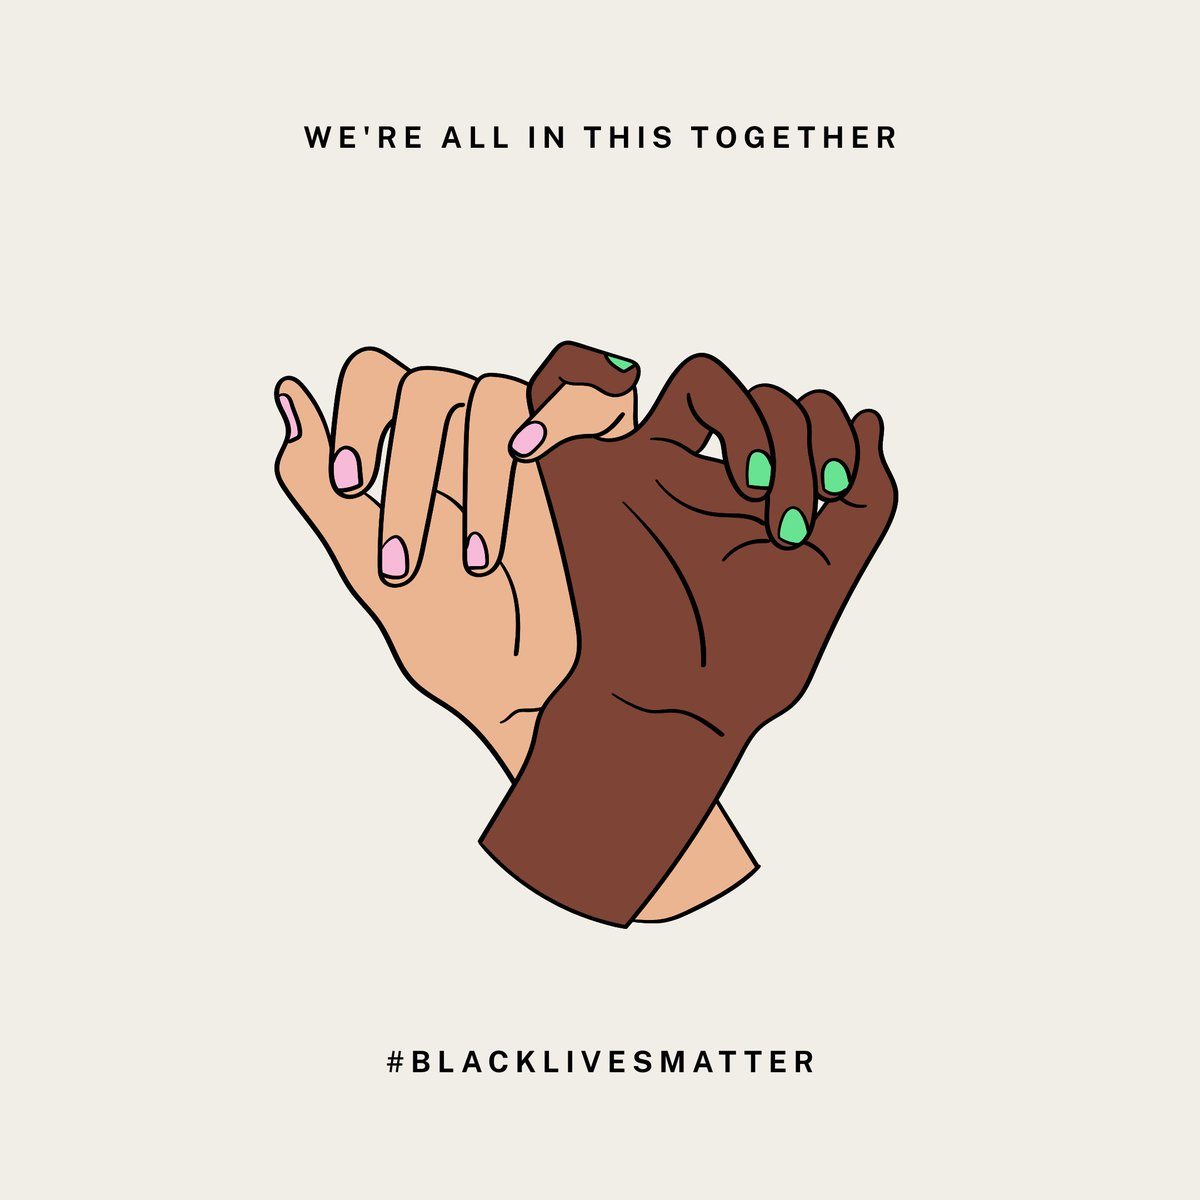 #BlackLivesMattters #WeAreONE #noracism #BLACK_LIVES_MATTER https://t.co/gufXpjIXkj